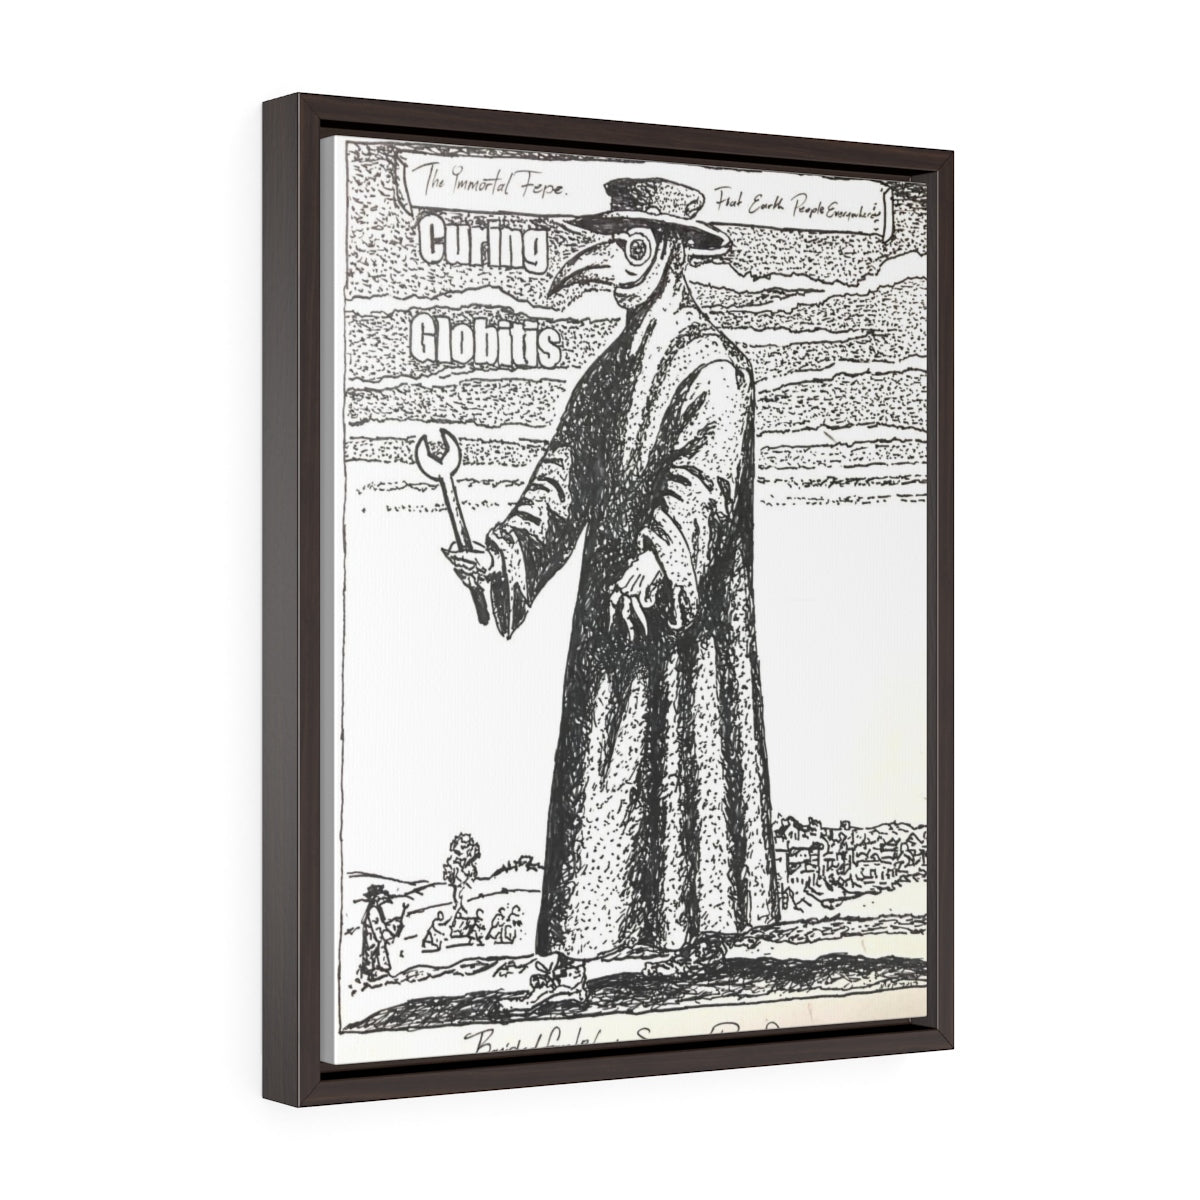 CURE FOR GLOBITIS/ Print of Marker Drawing by MVP_DaHardwareVandal/ Vertical Framed Premium Gallery Wrap Canvas